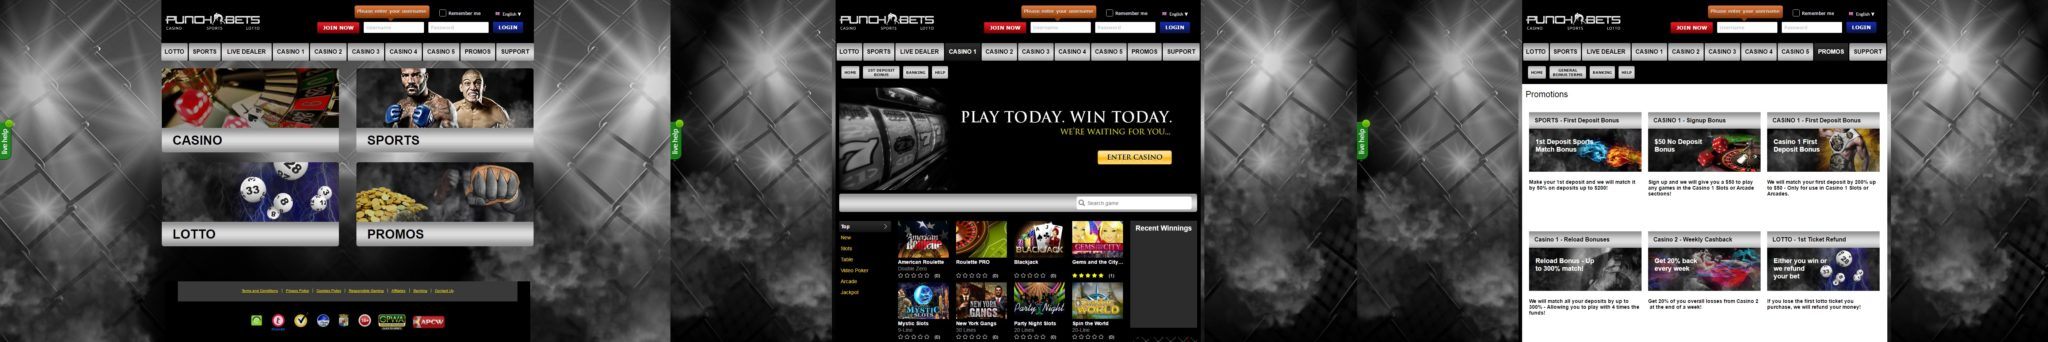 Punchbets_screens